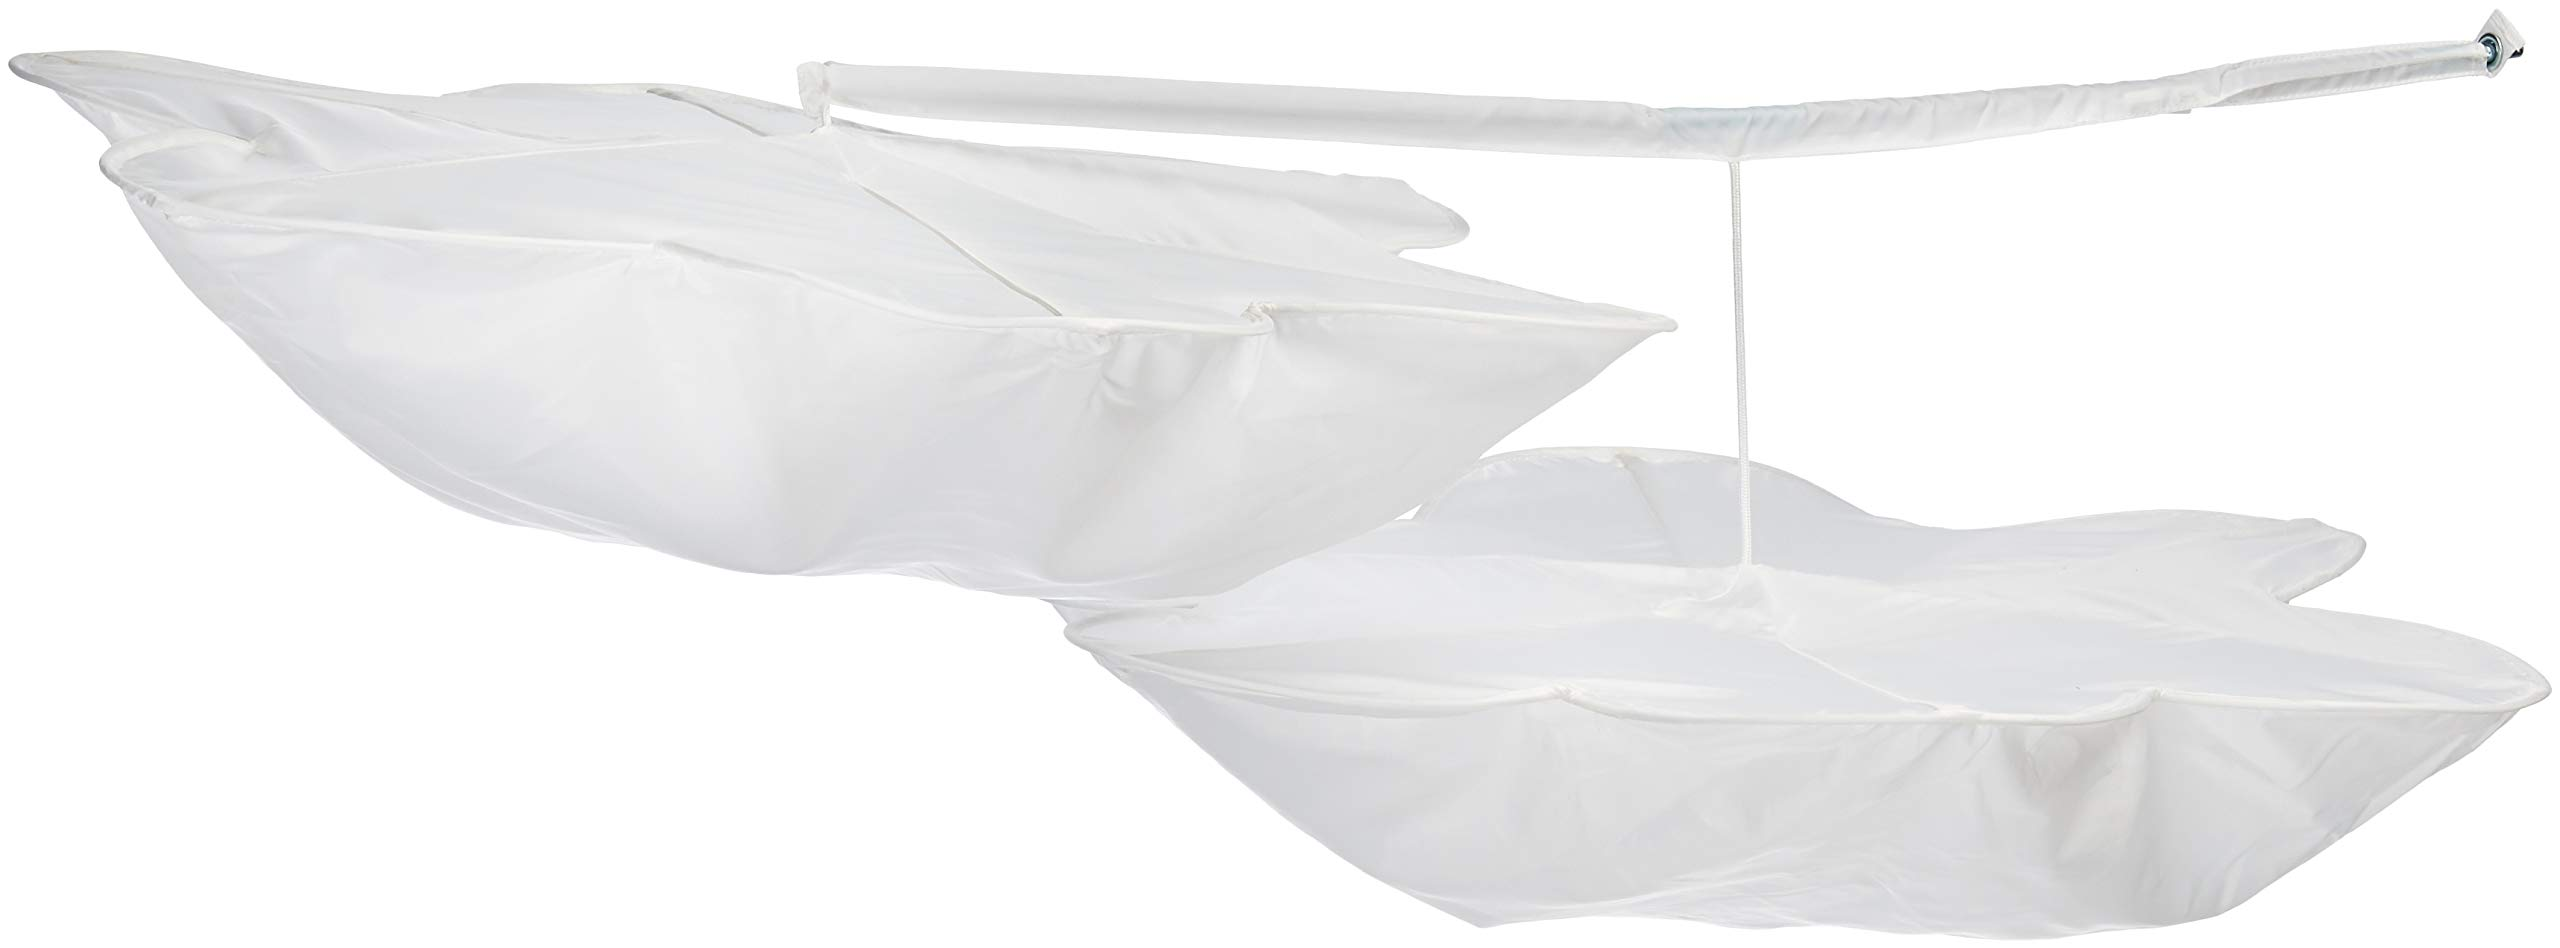 Ikea Himmelsk Crib Bed Canopy, white